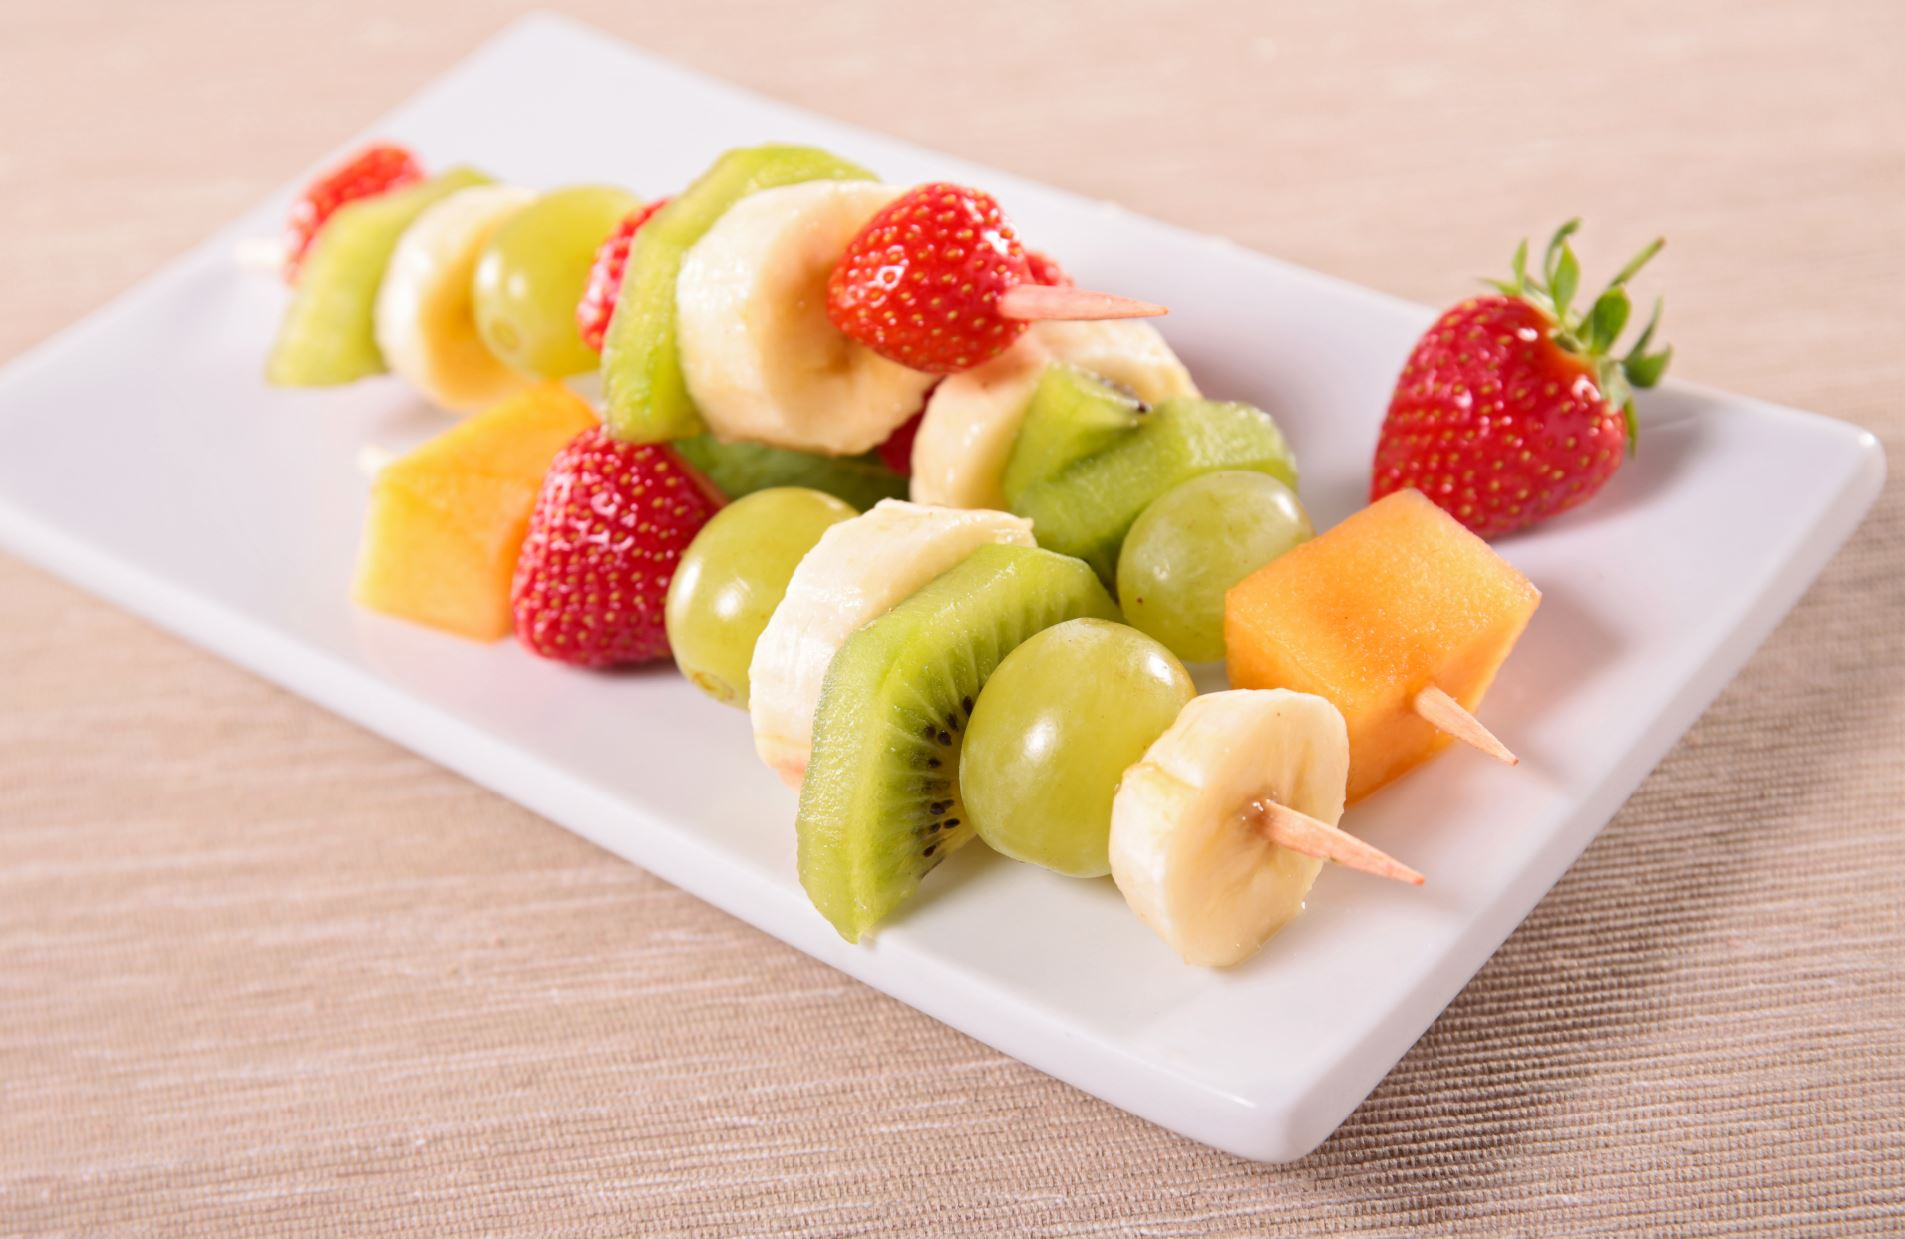 Pieces of colorful fruit on a skewer